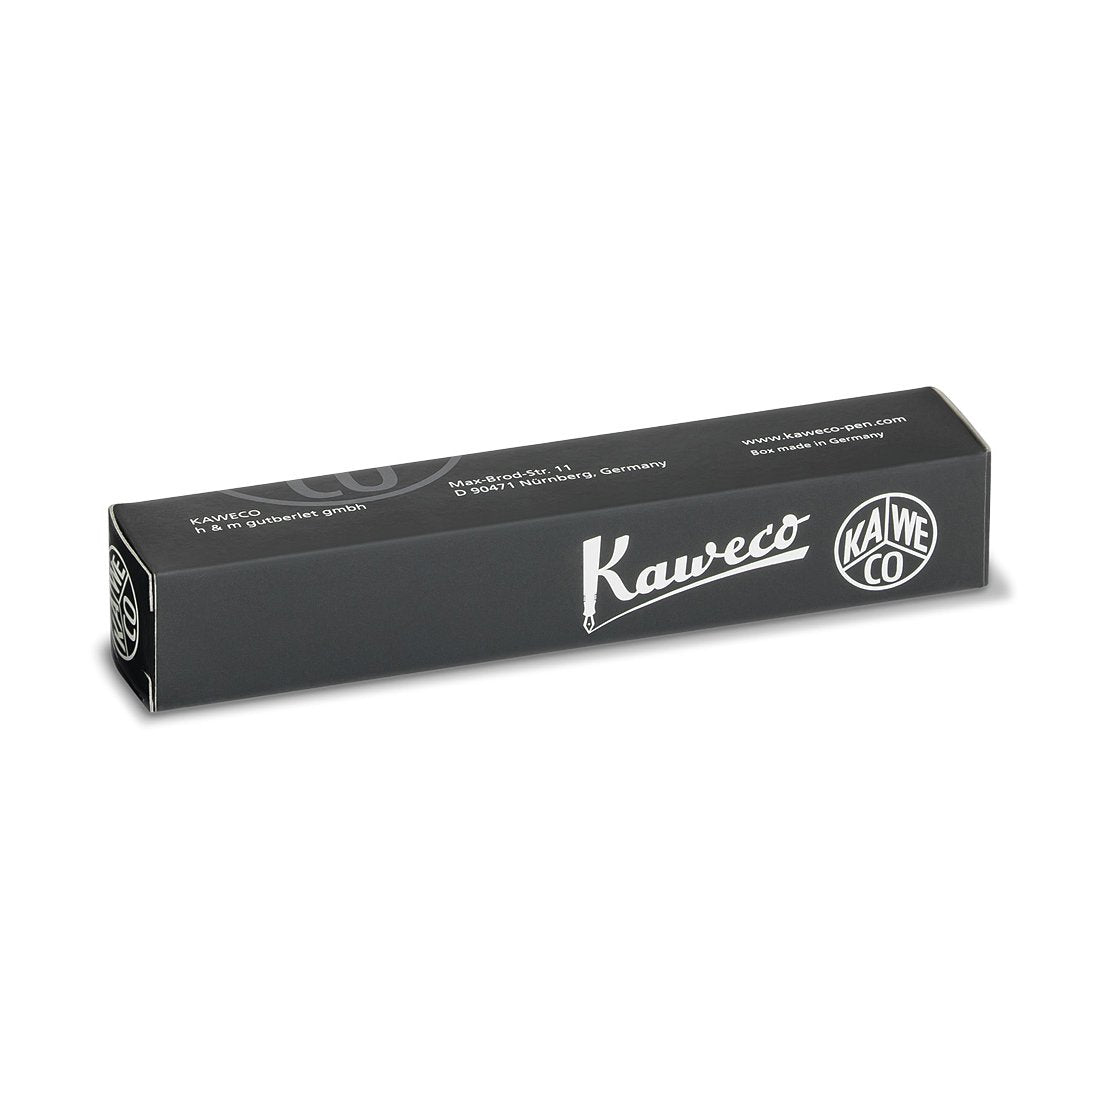 Kaweco Classic Sport Mechanical Pencil Green - MOMOQO